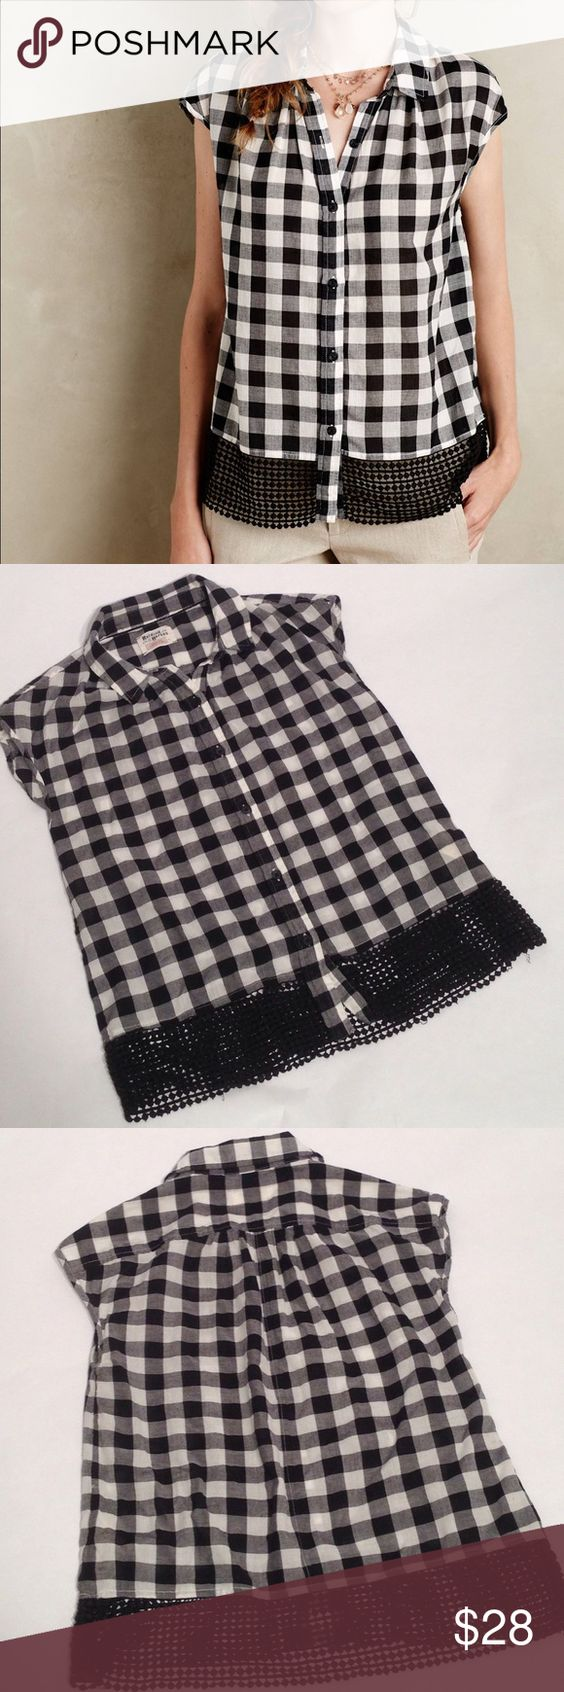 """Holding Horses Nellie Gingham black/white top SM Beautiful gingham button down top from Anthropologie.  Excellent used condition.  Underarm to underarm is approx 20"""" side to side.  Length from shoulder swam at collar to hemline is approx 24.5"""".   100% cotton.  Please check measurements before purchasing for fit! Anthropologie Tops Button Down Shirts"""